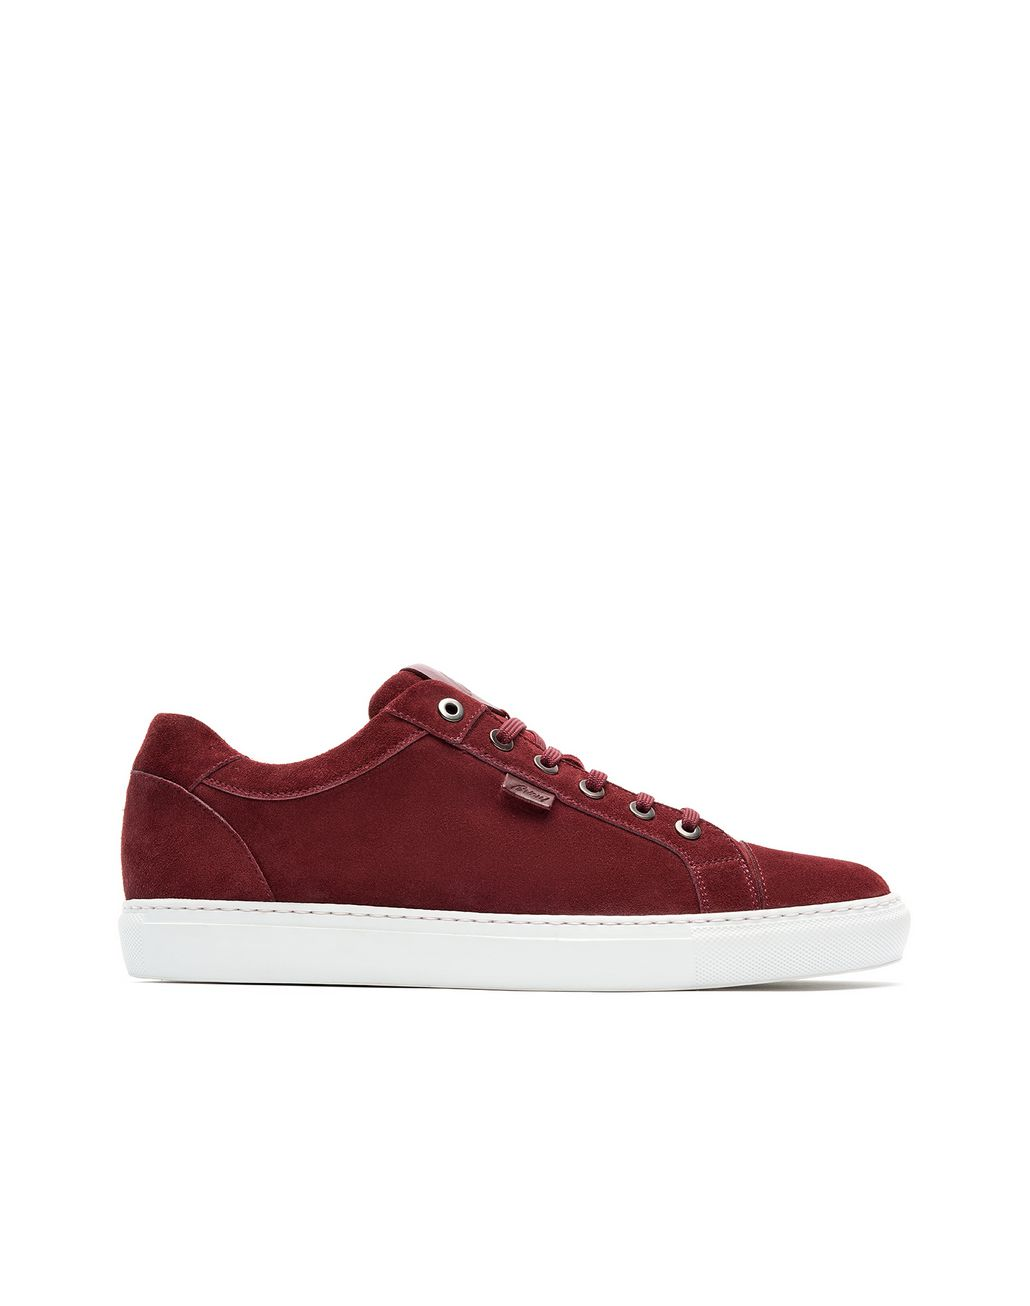 BRIONI Basket bordeaux en veau velours Sneaker [*** pickupInStoreShippingNotGuaranteed_info ***] f